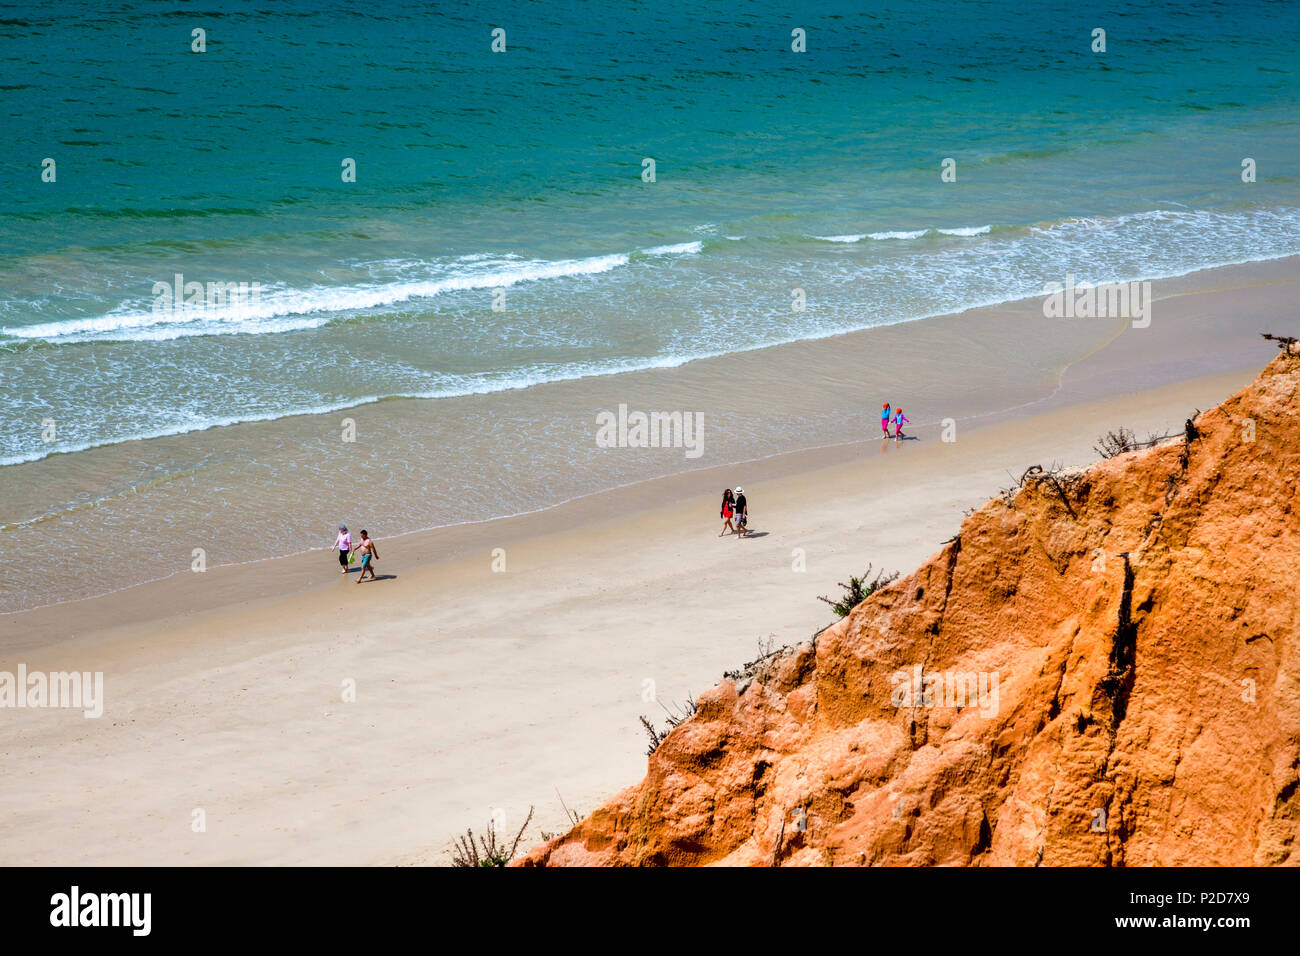 Red cliffs, Praia de Falesia, Albufeira, Algarve, Portugal - Stock Image